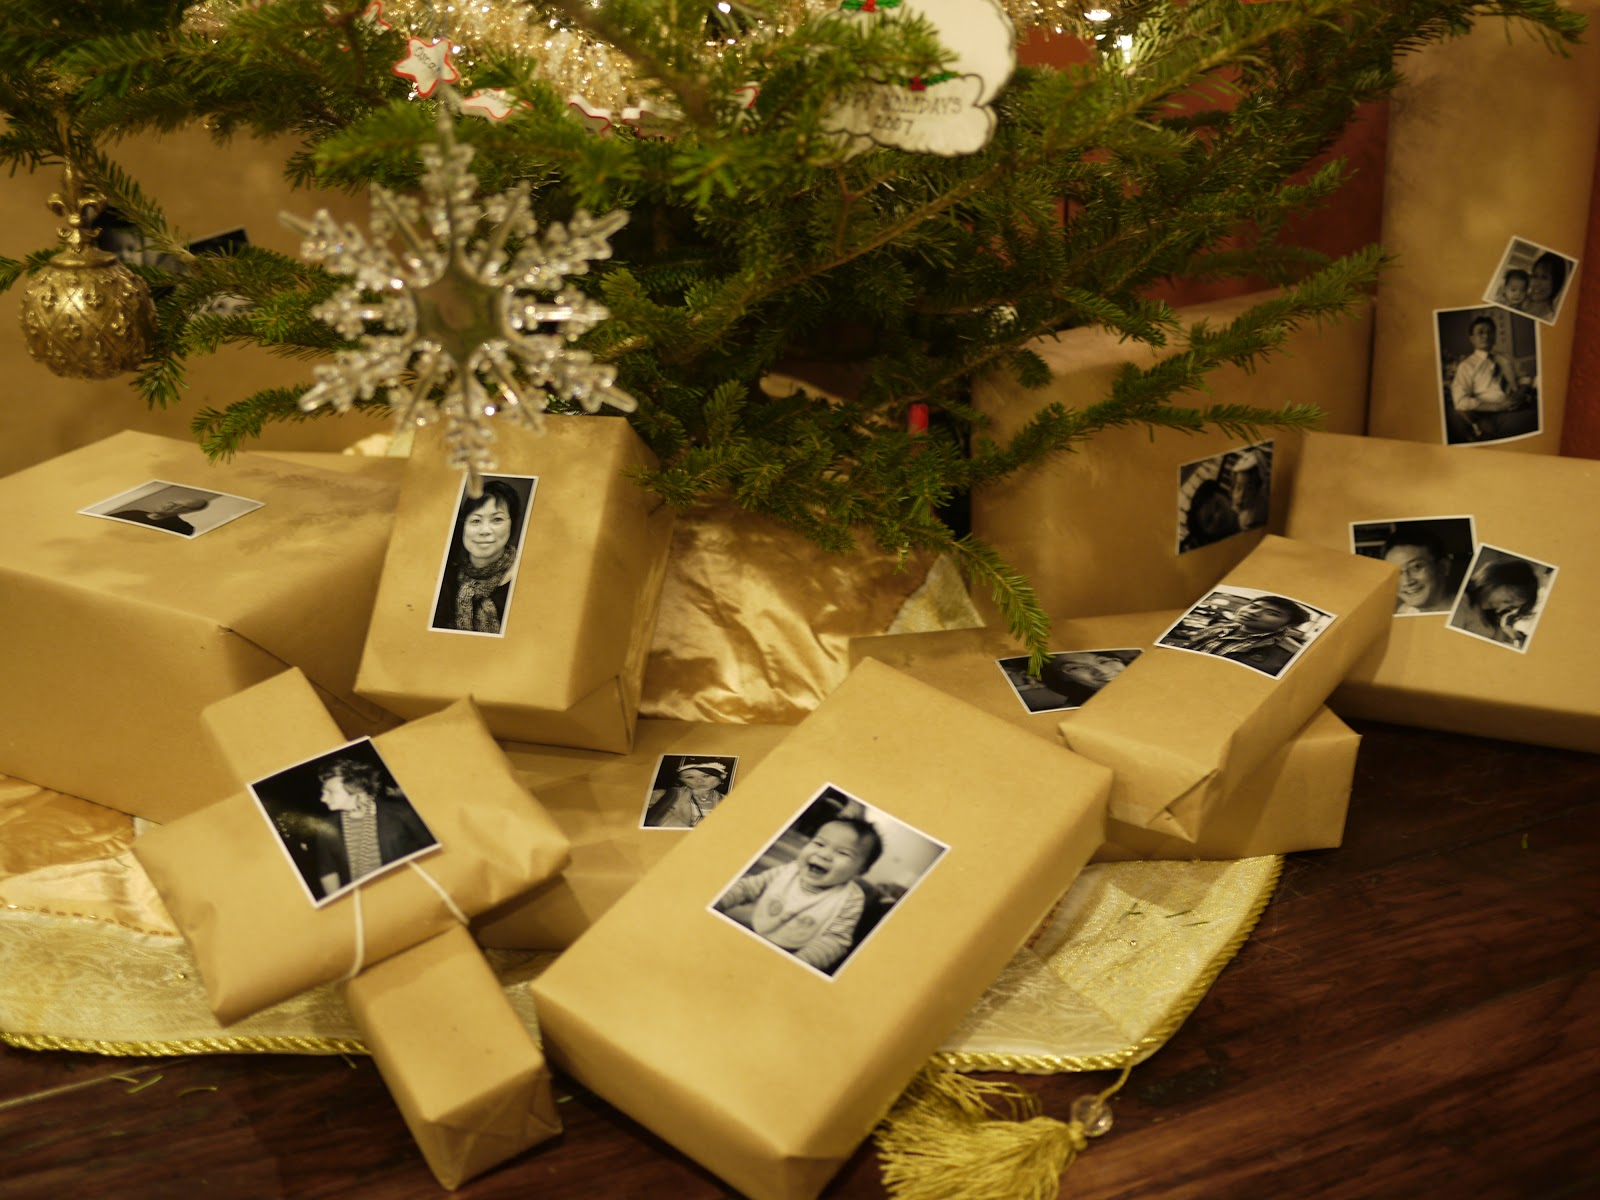 personalize gifts with pictures